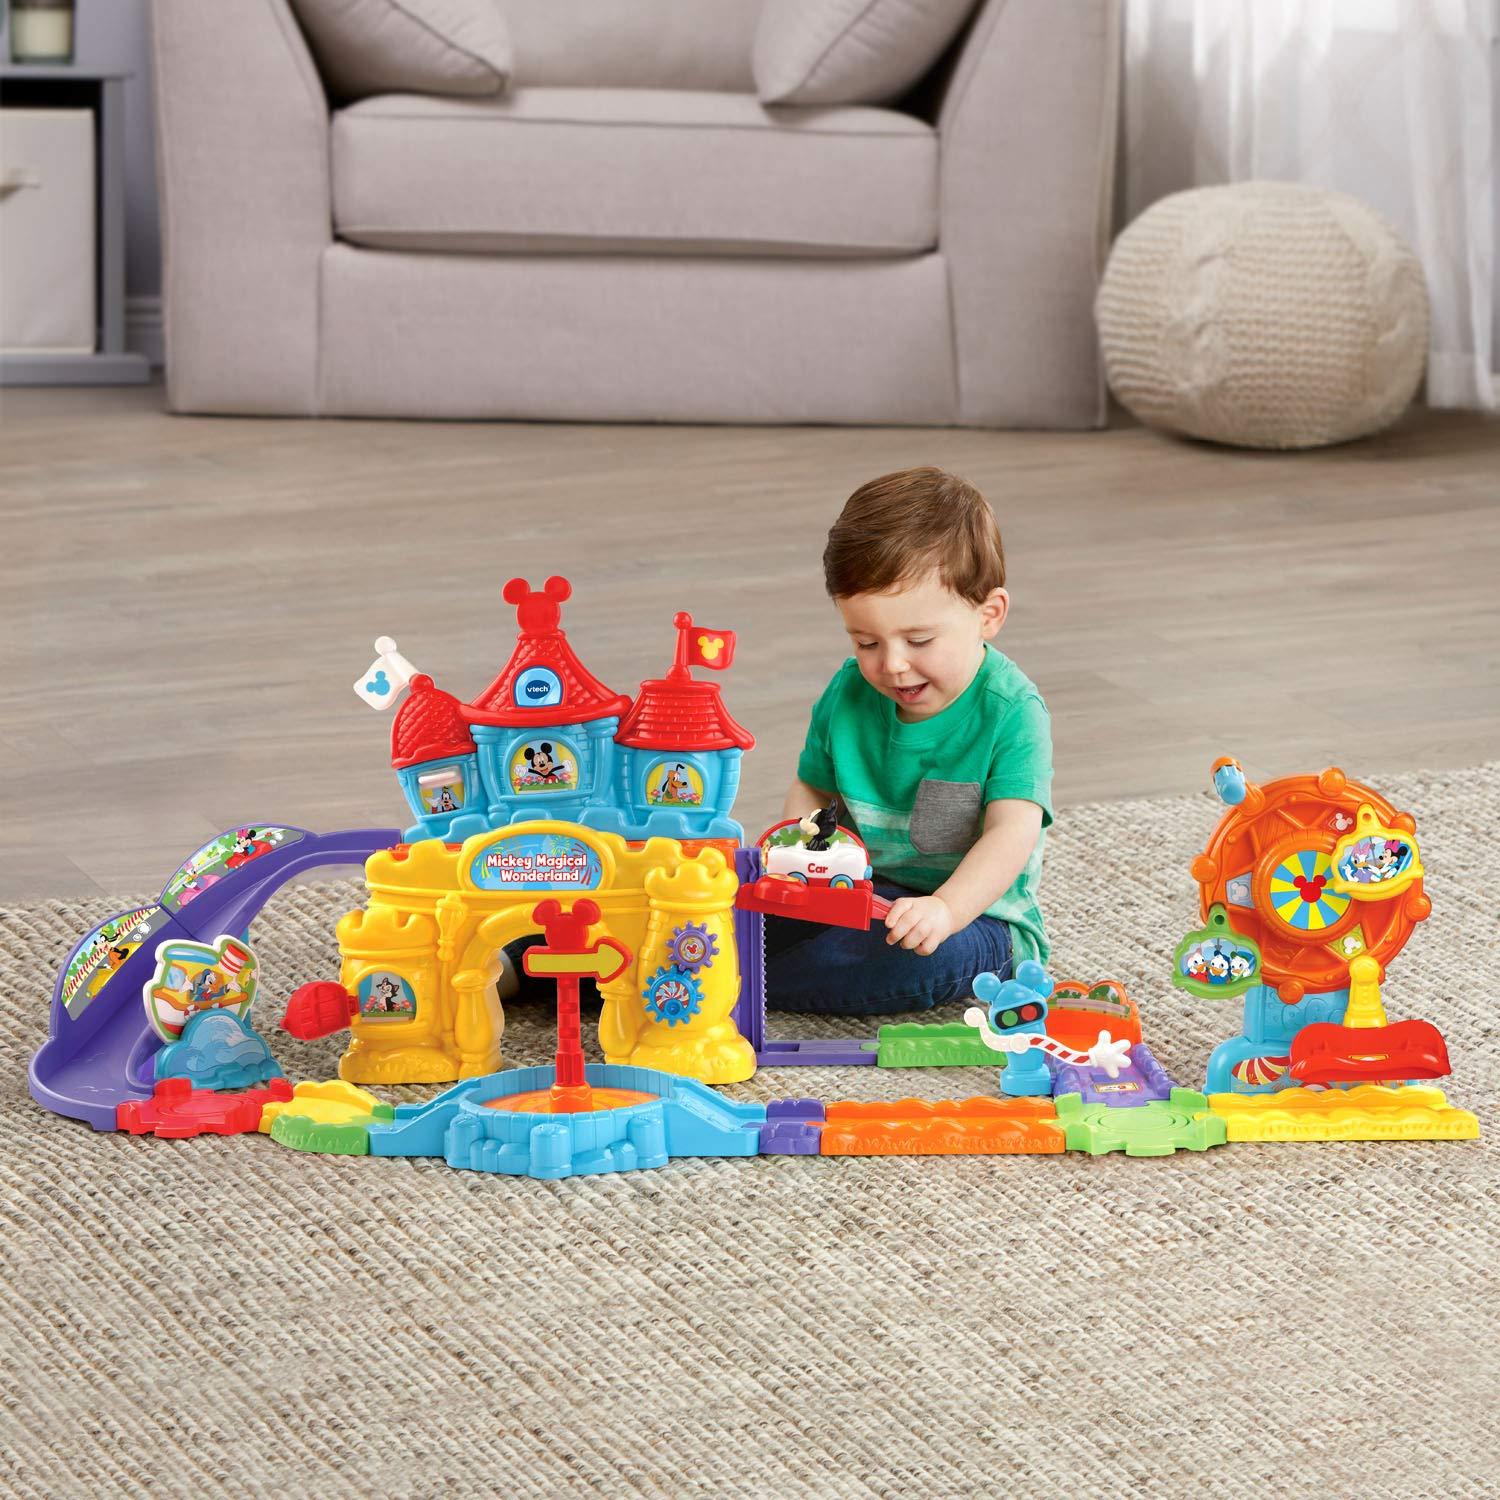 VTech Go! Go! Smart Wheels Mickey Mouse Magical Wonderland, Multicolor by VTech (Image #6)